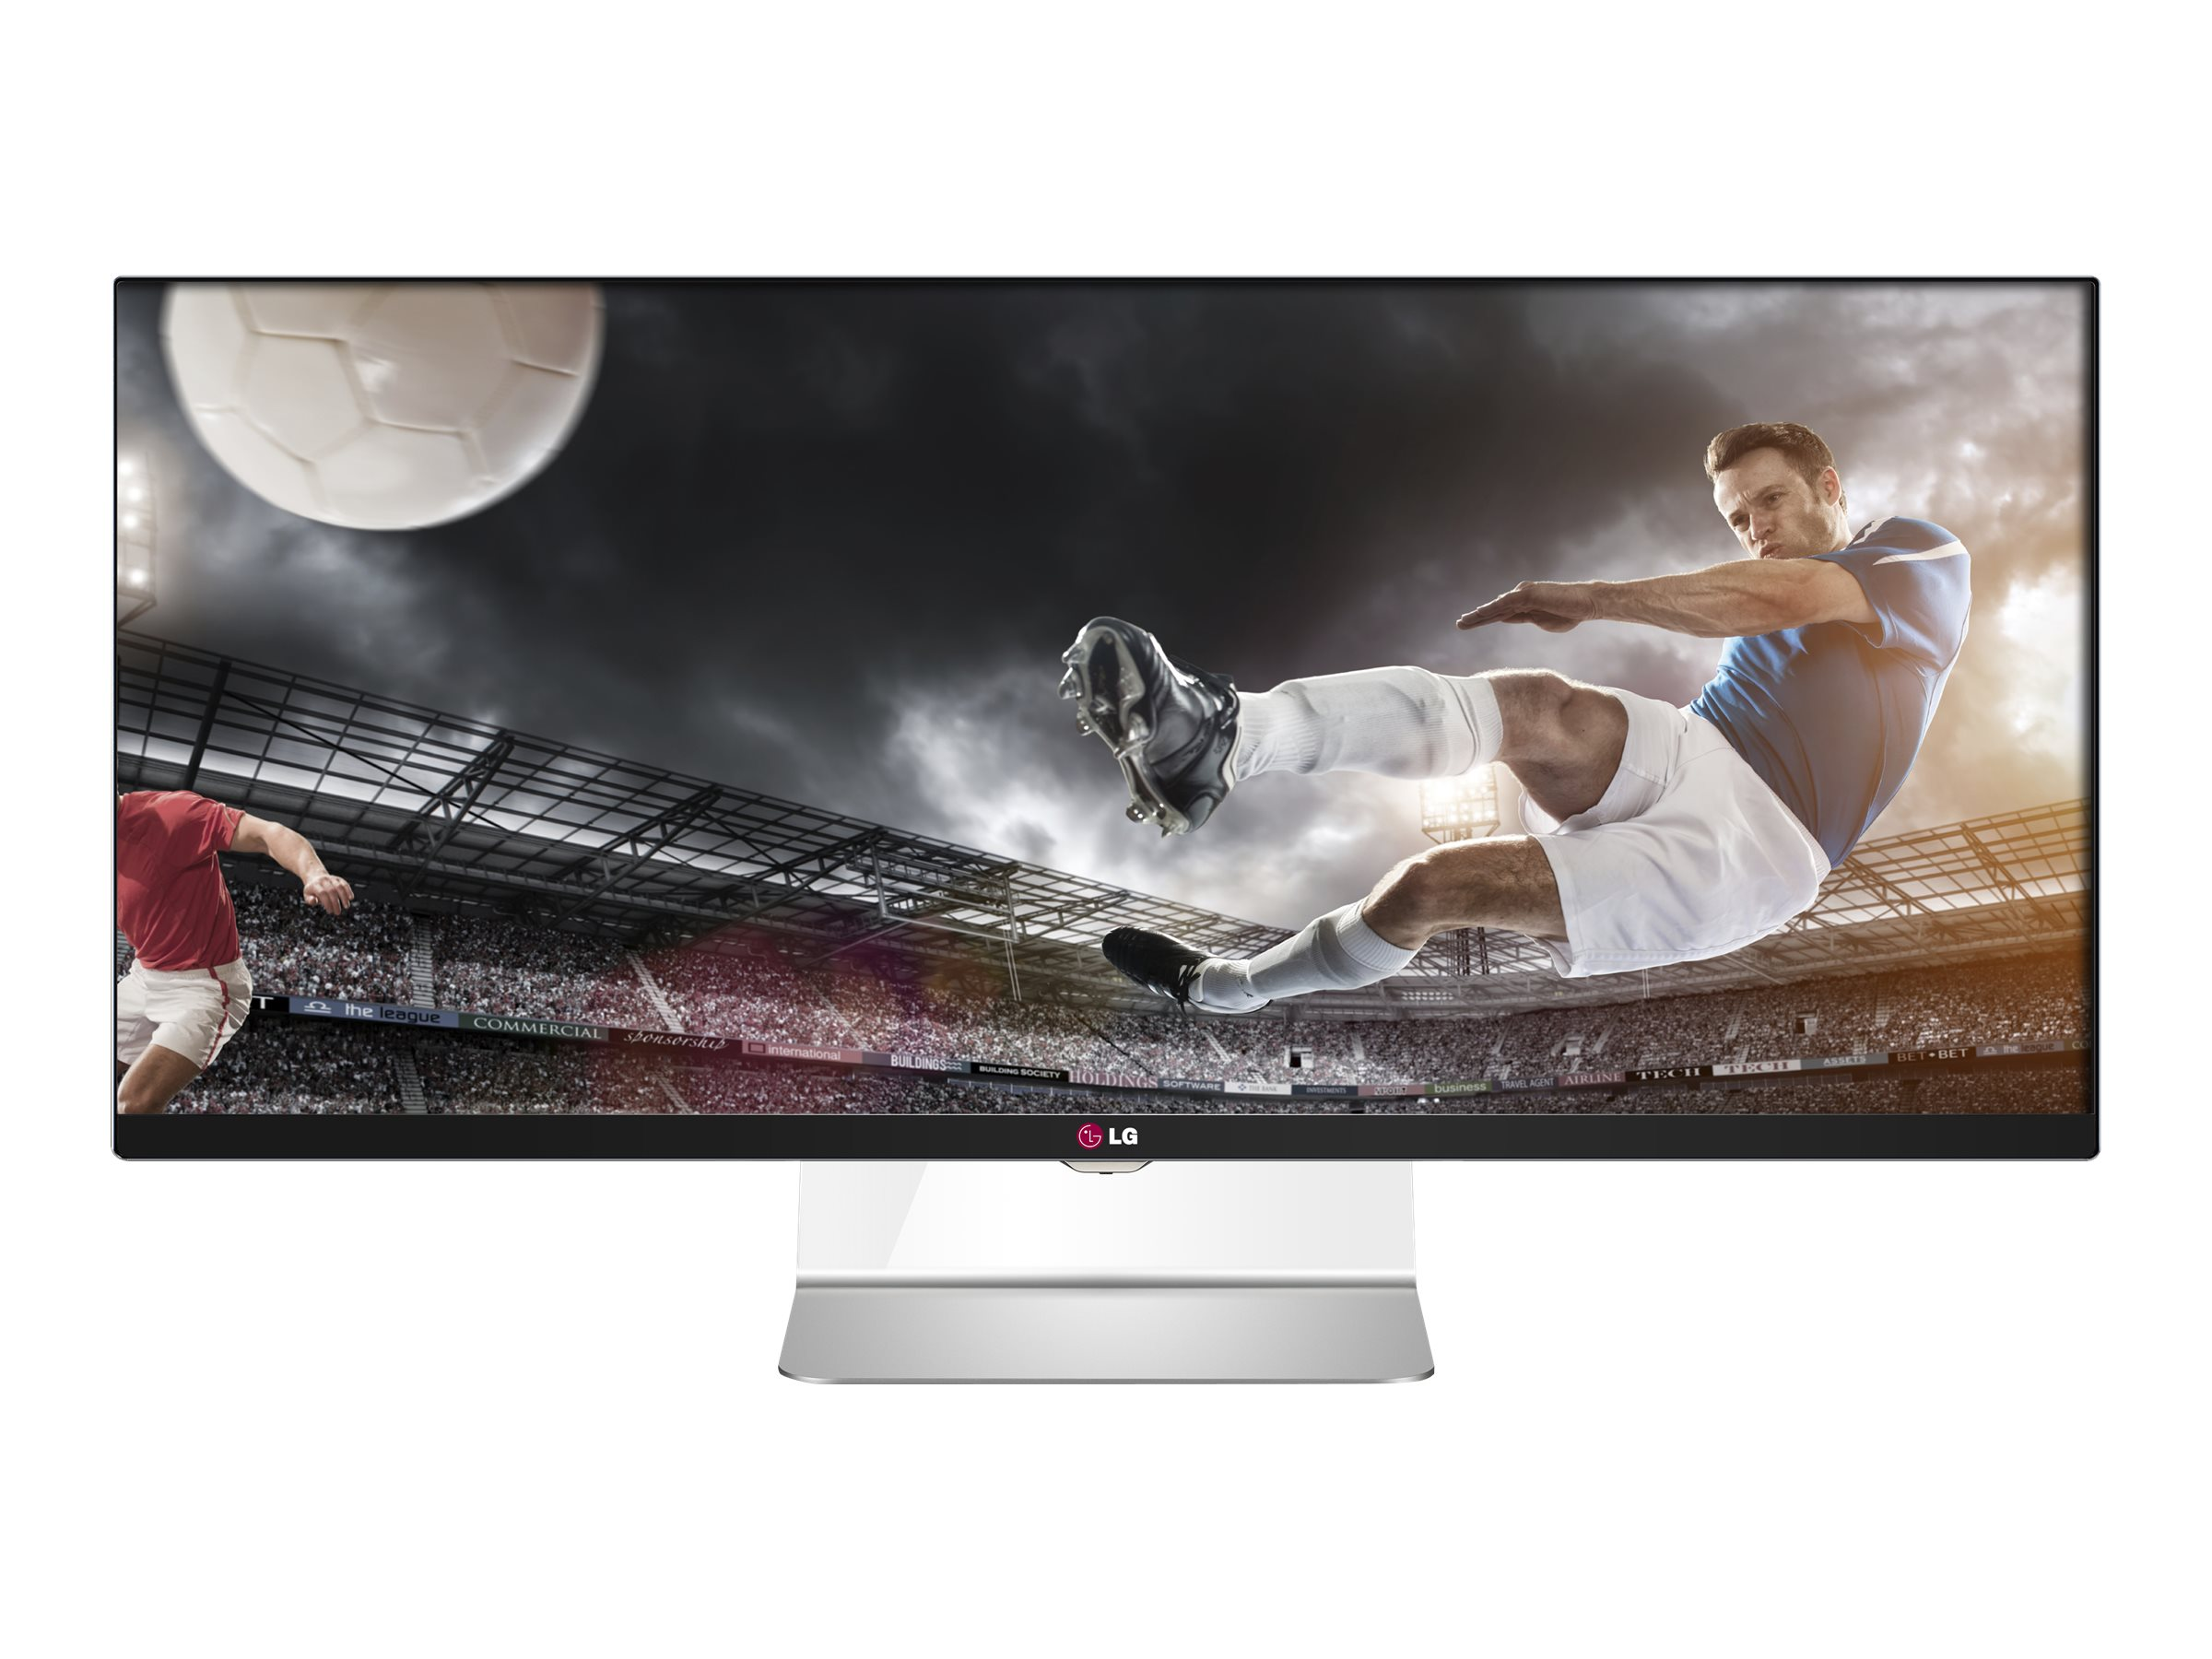 LG 34 UM94-P QHD LED-LCD Ultrawide Monitor, Black, 34UM94-P, 17546886, Monitors - Large-Format LED-LCD